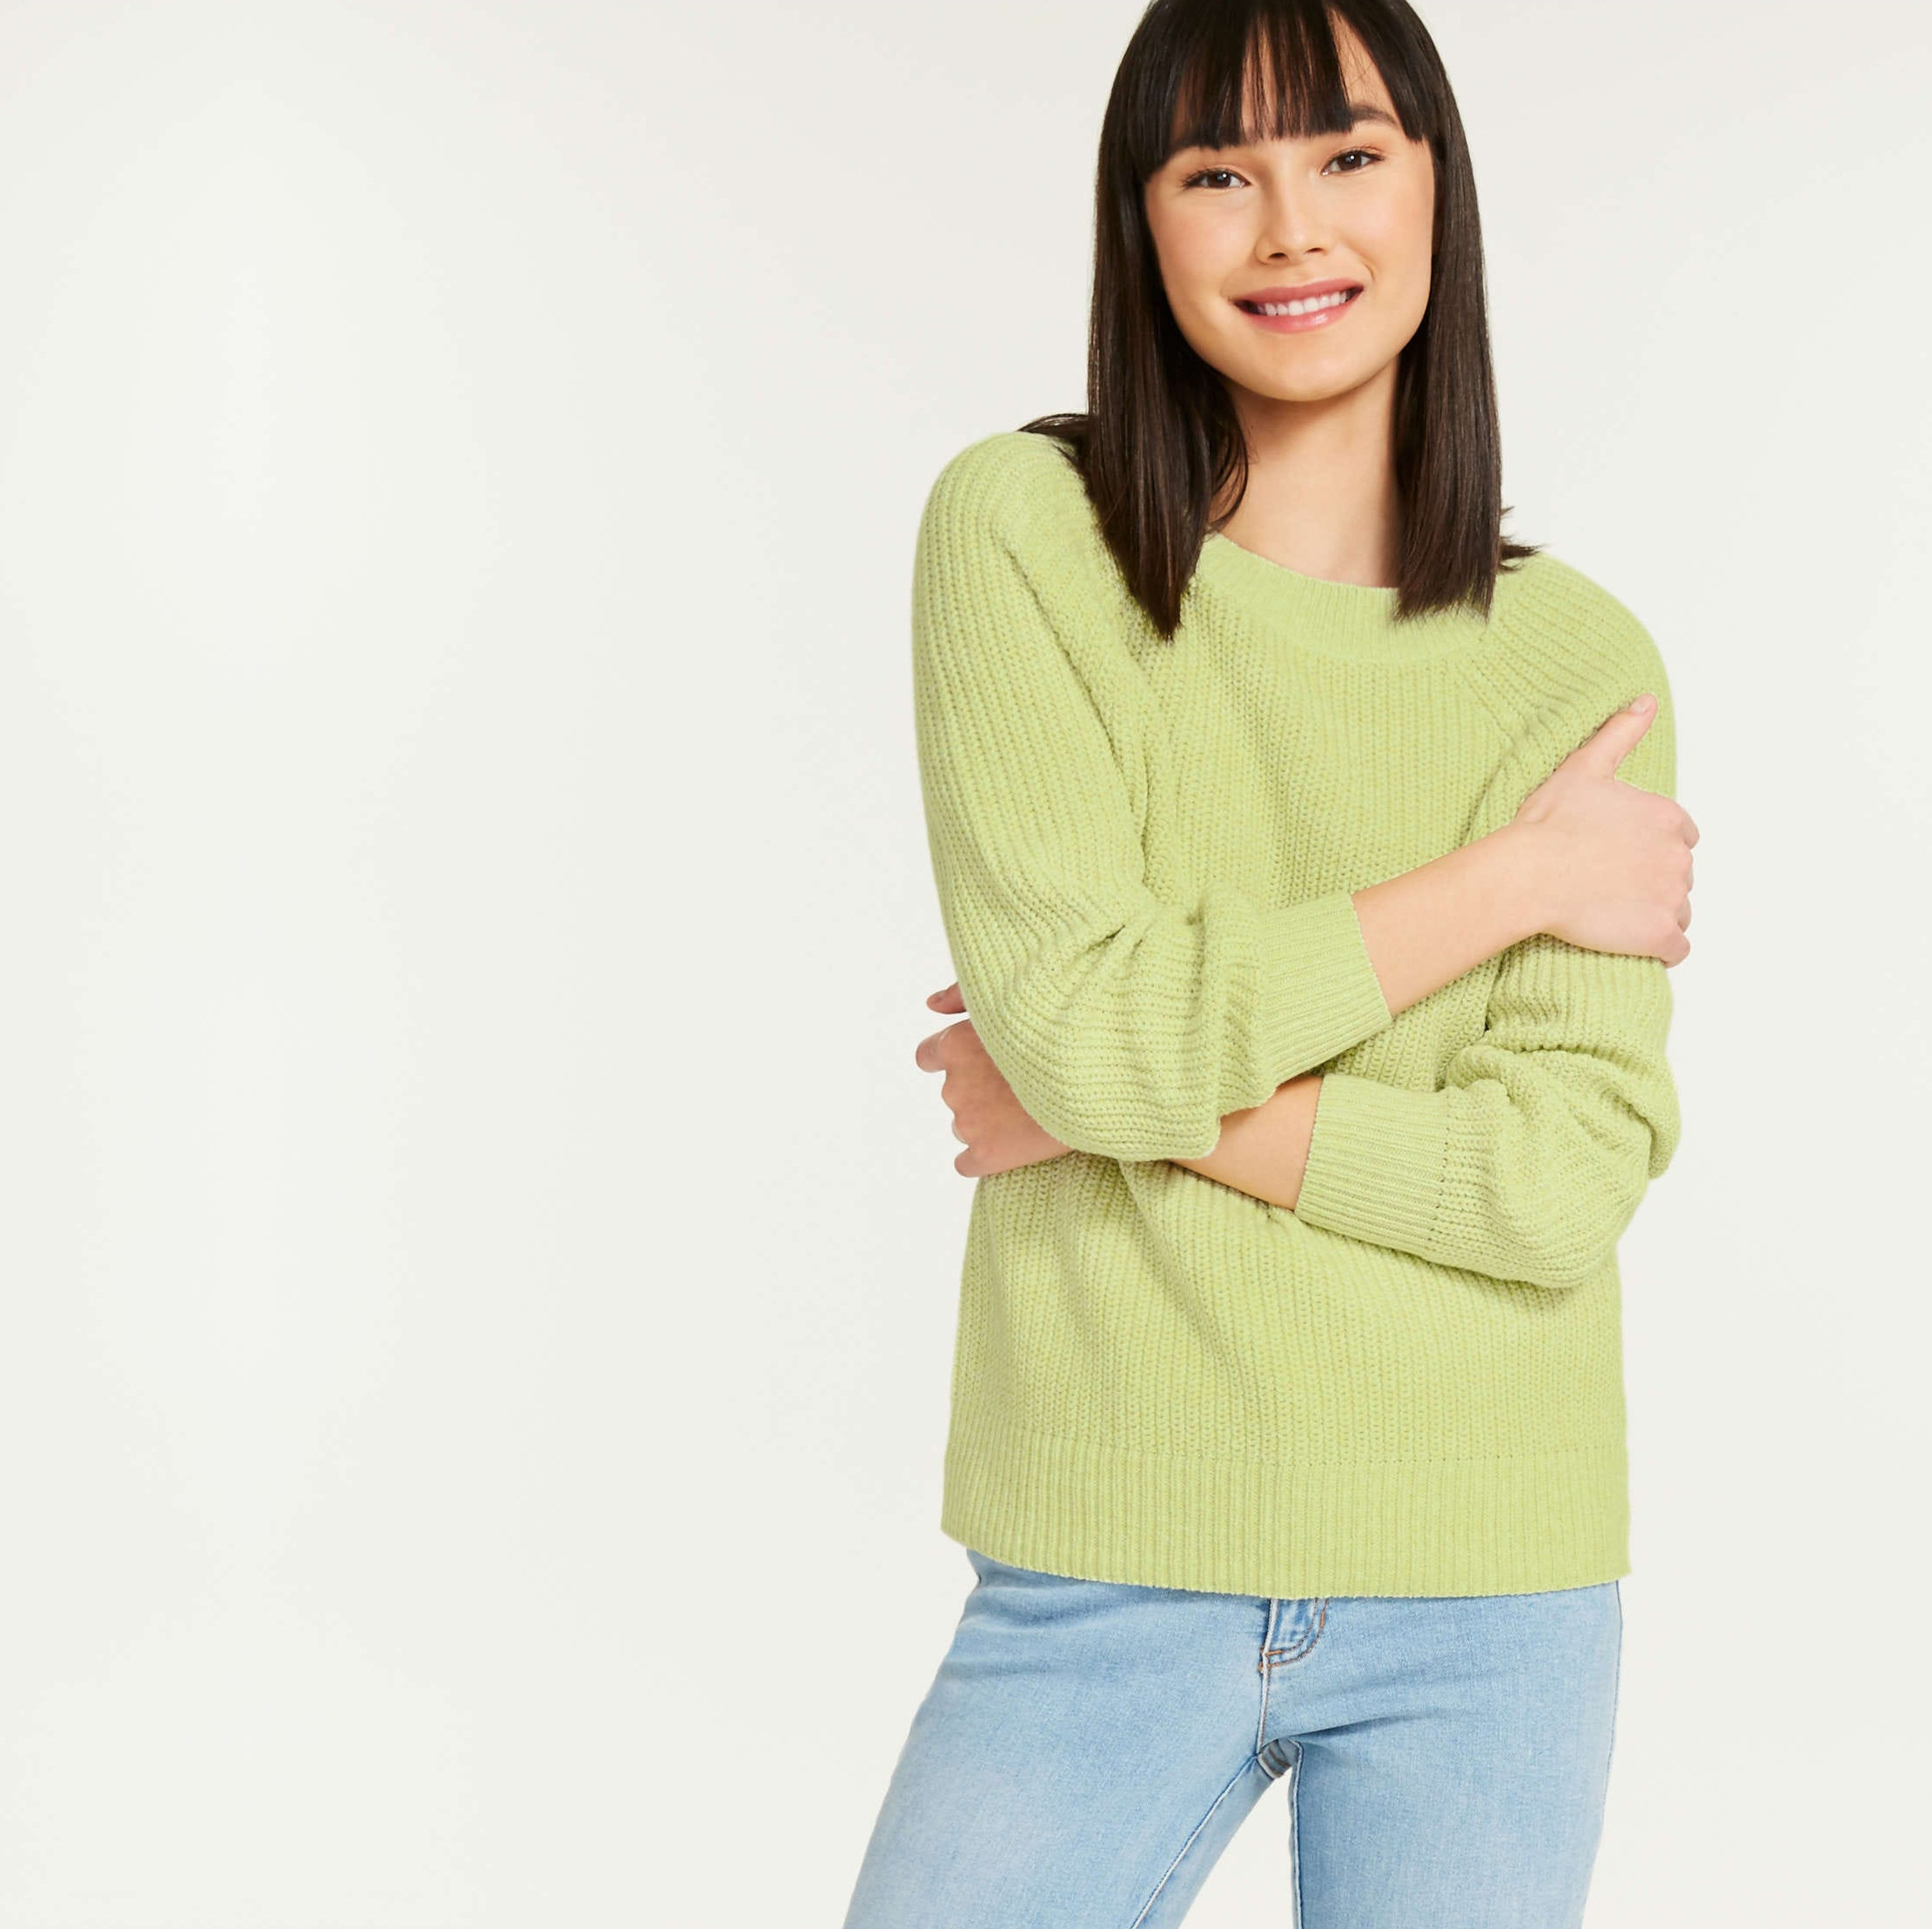 A person wearing a chunky knit sweater with jeans